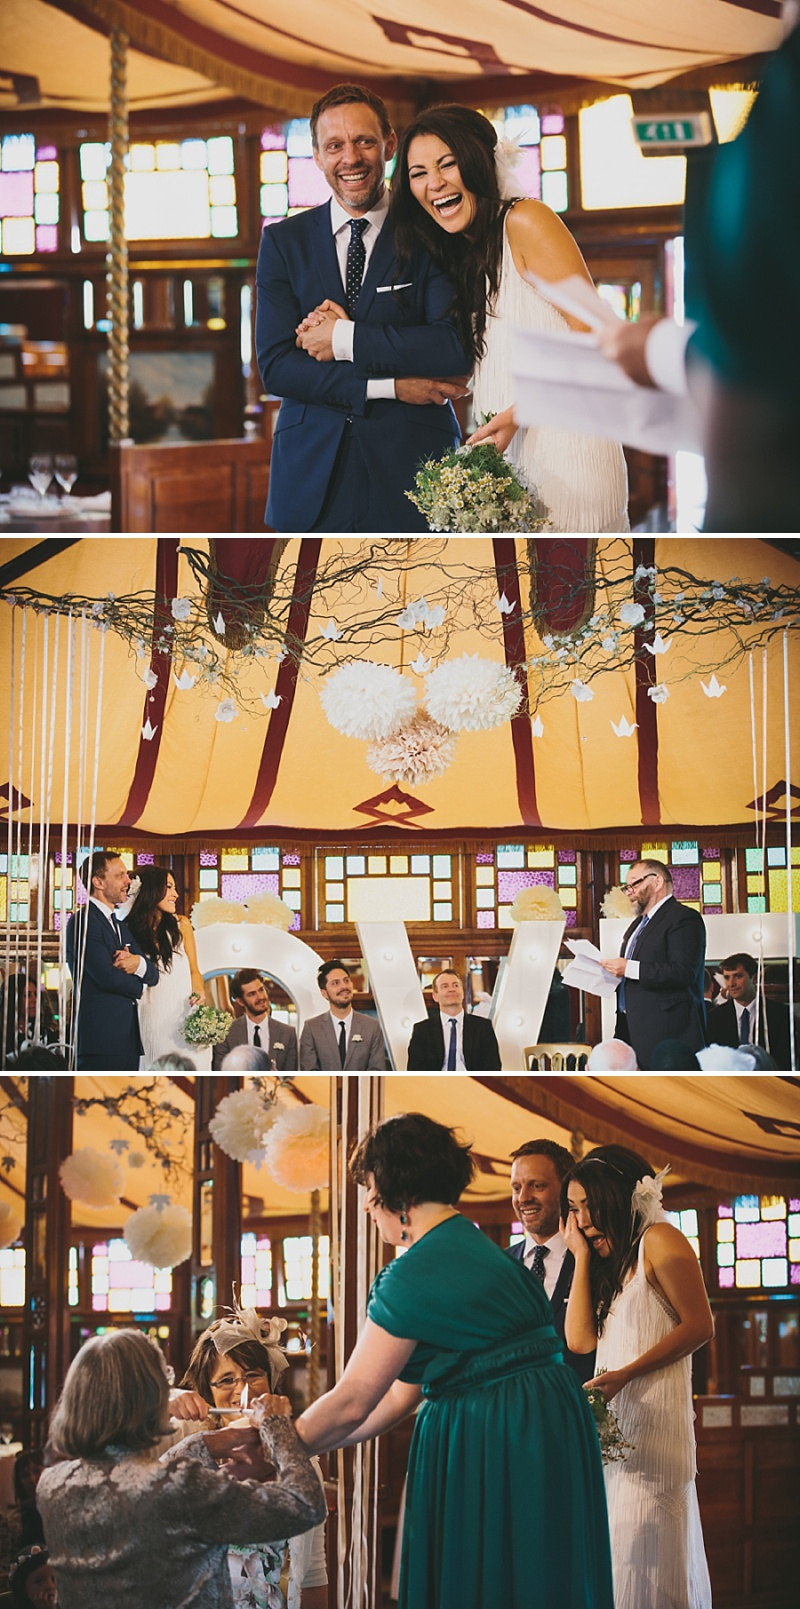 A Great Gatsby and Woodstock themed modern wedding with